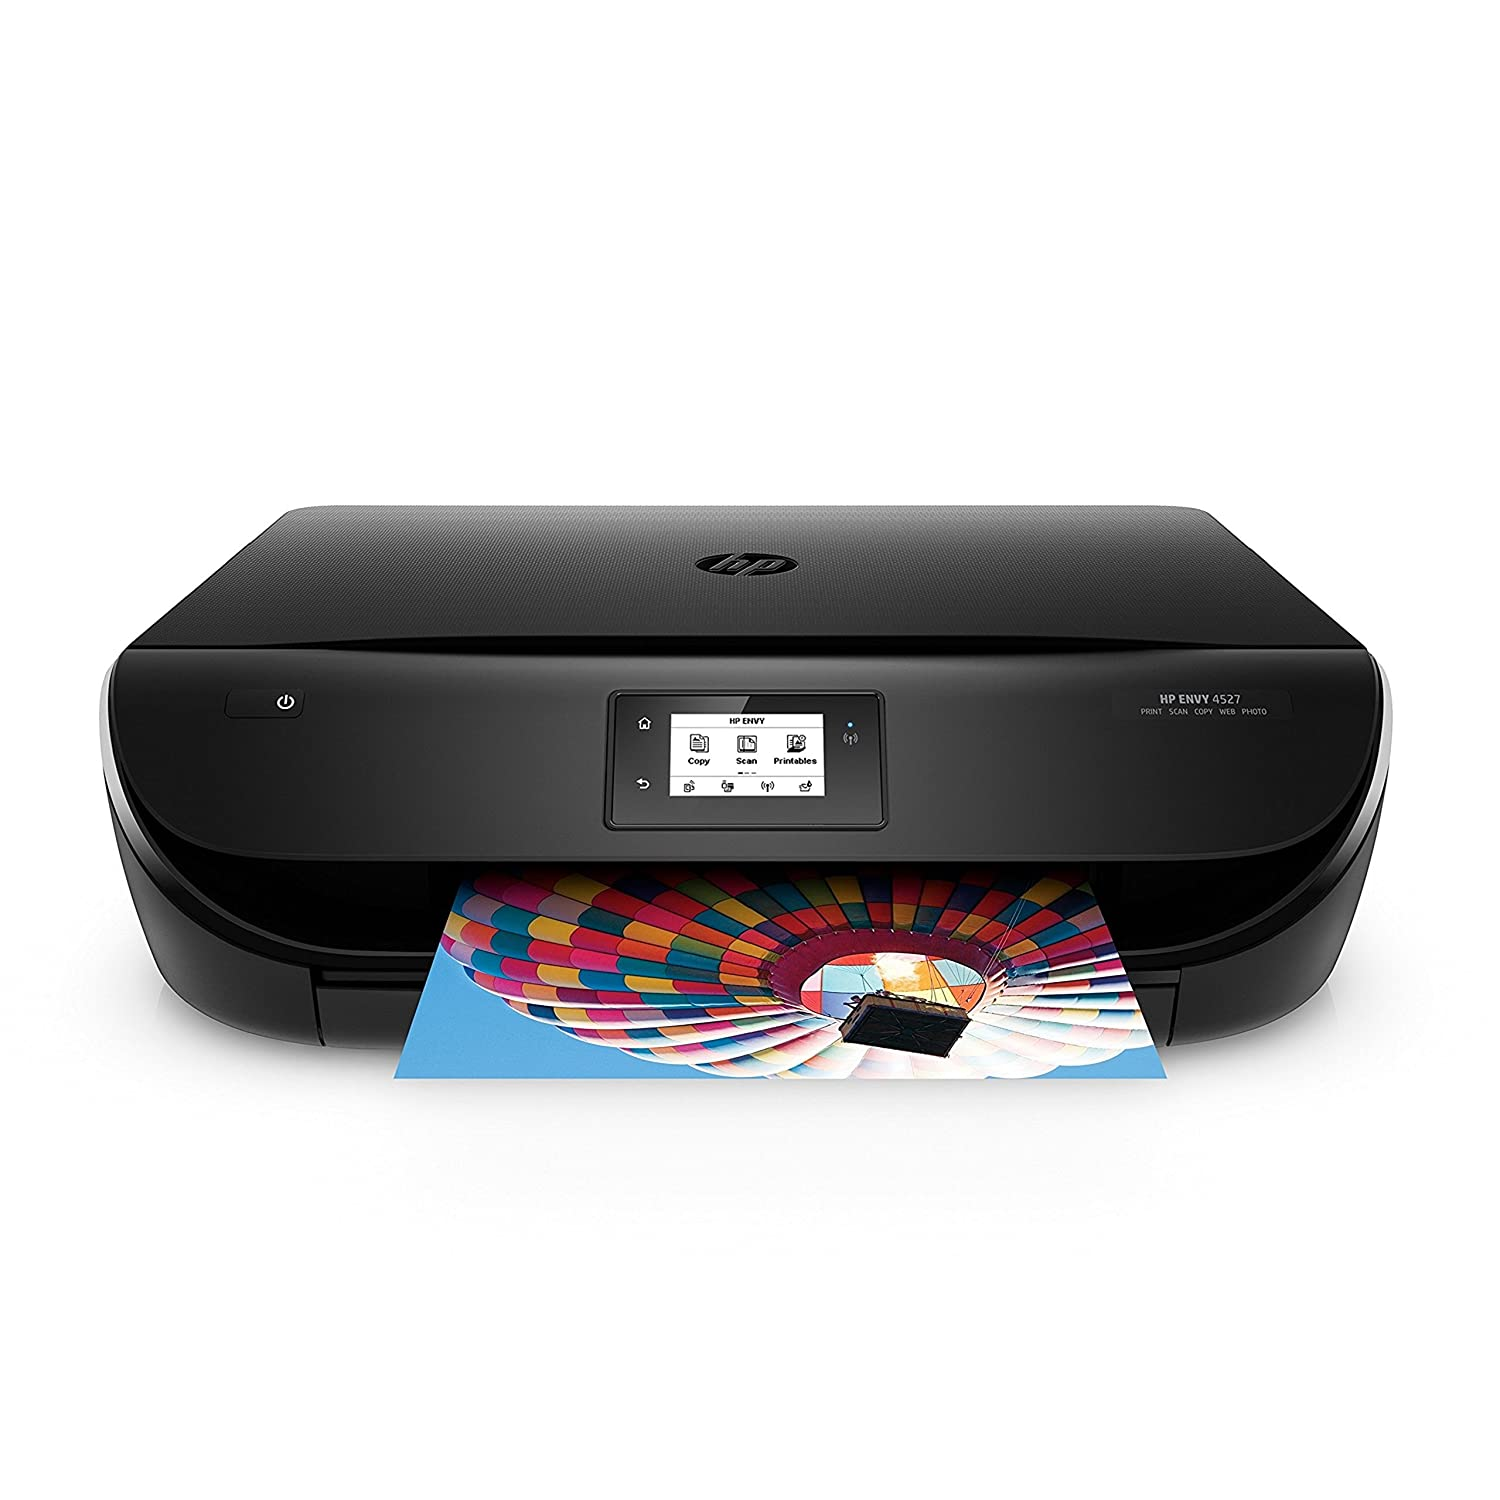 HP ENVY 4527 Stampante Multifunzione Wireless, Instant Ink Ready con 3 Mesi di Prova Gratuita Inclusi